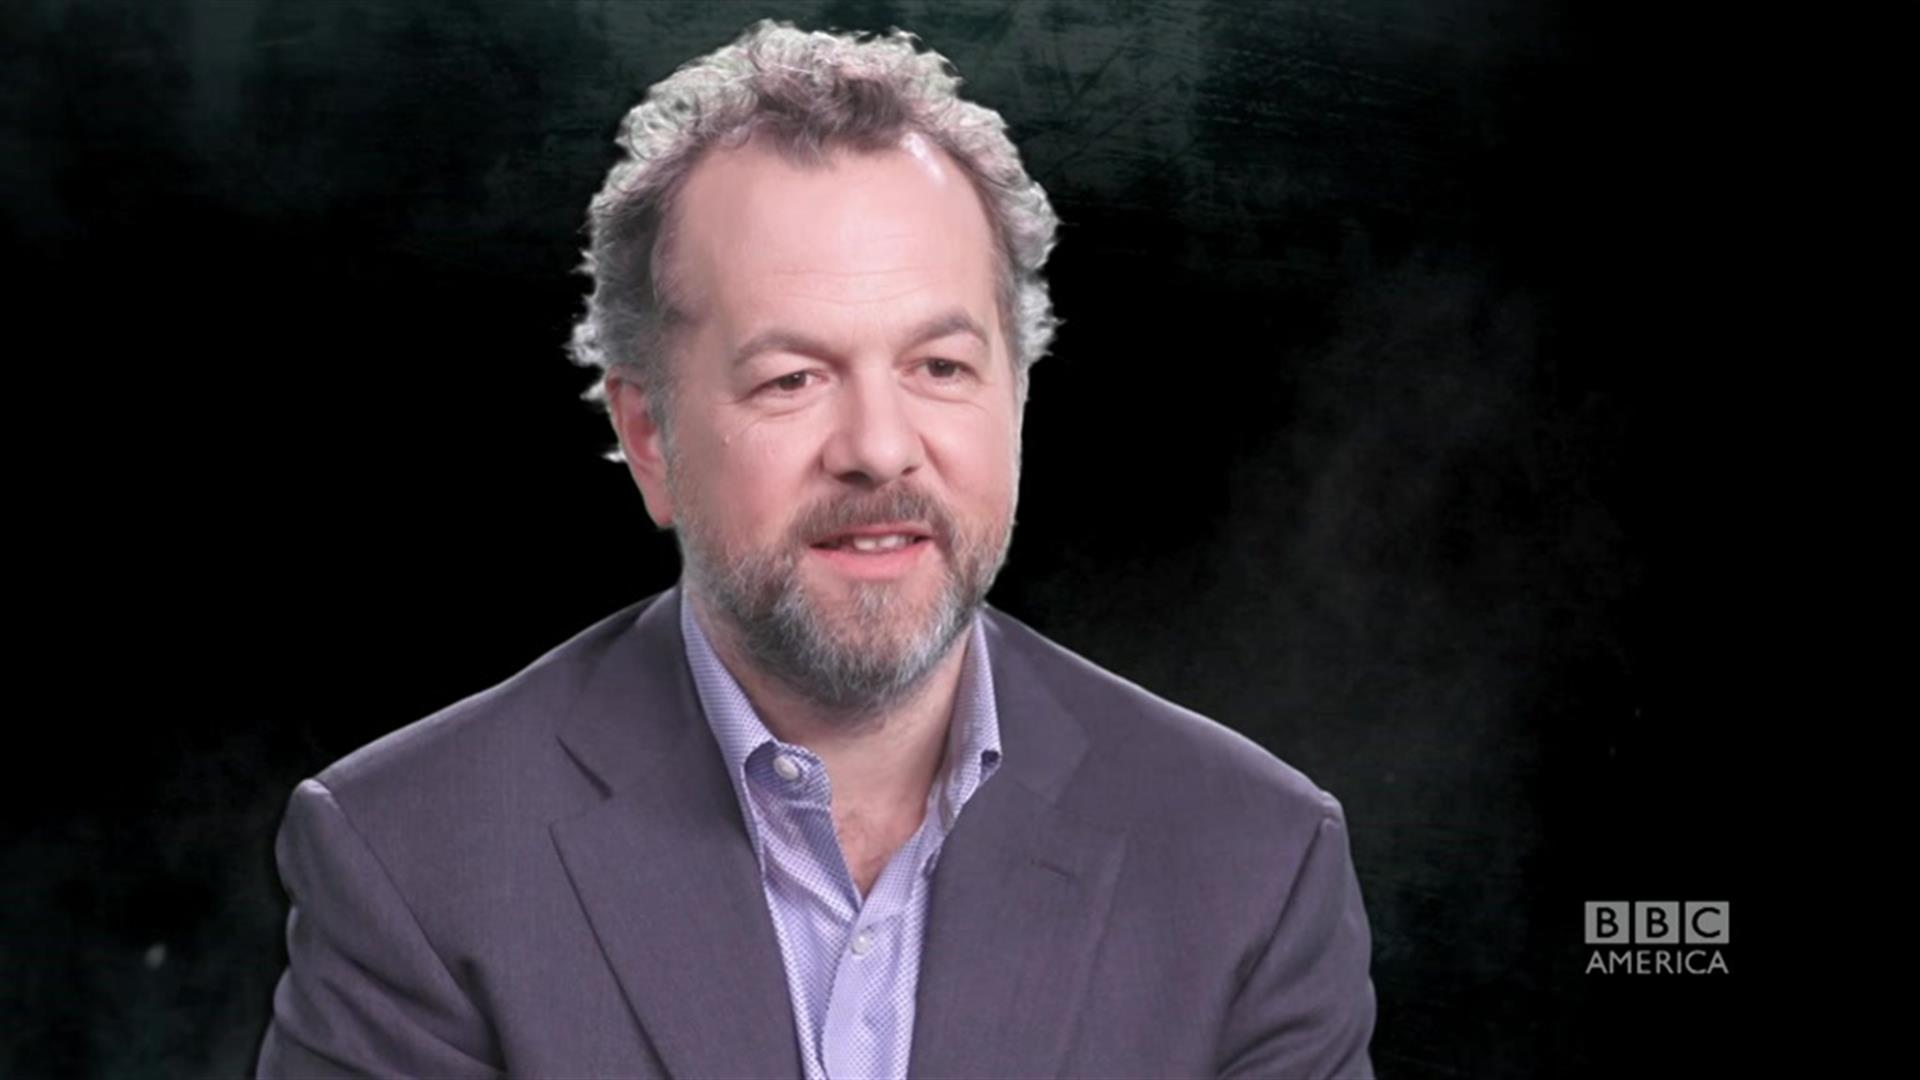 david costabile net worth